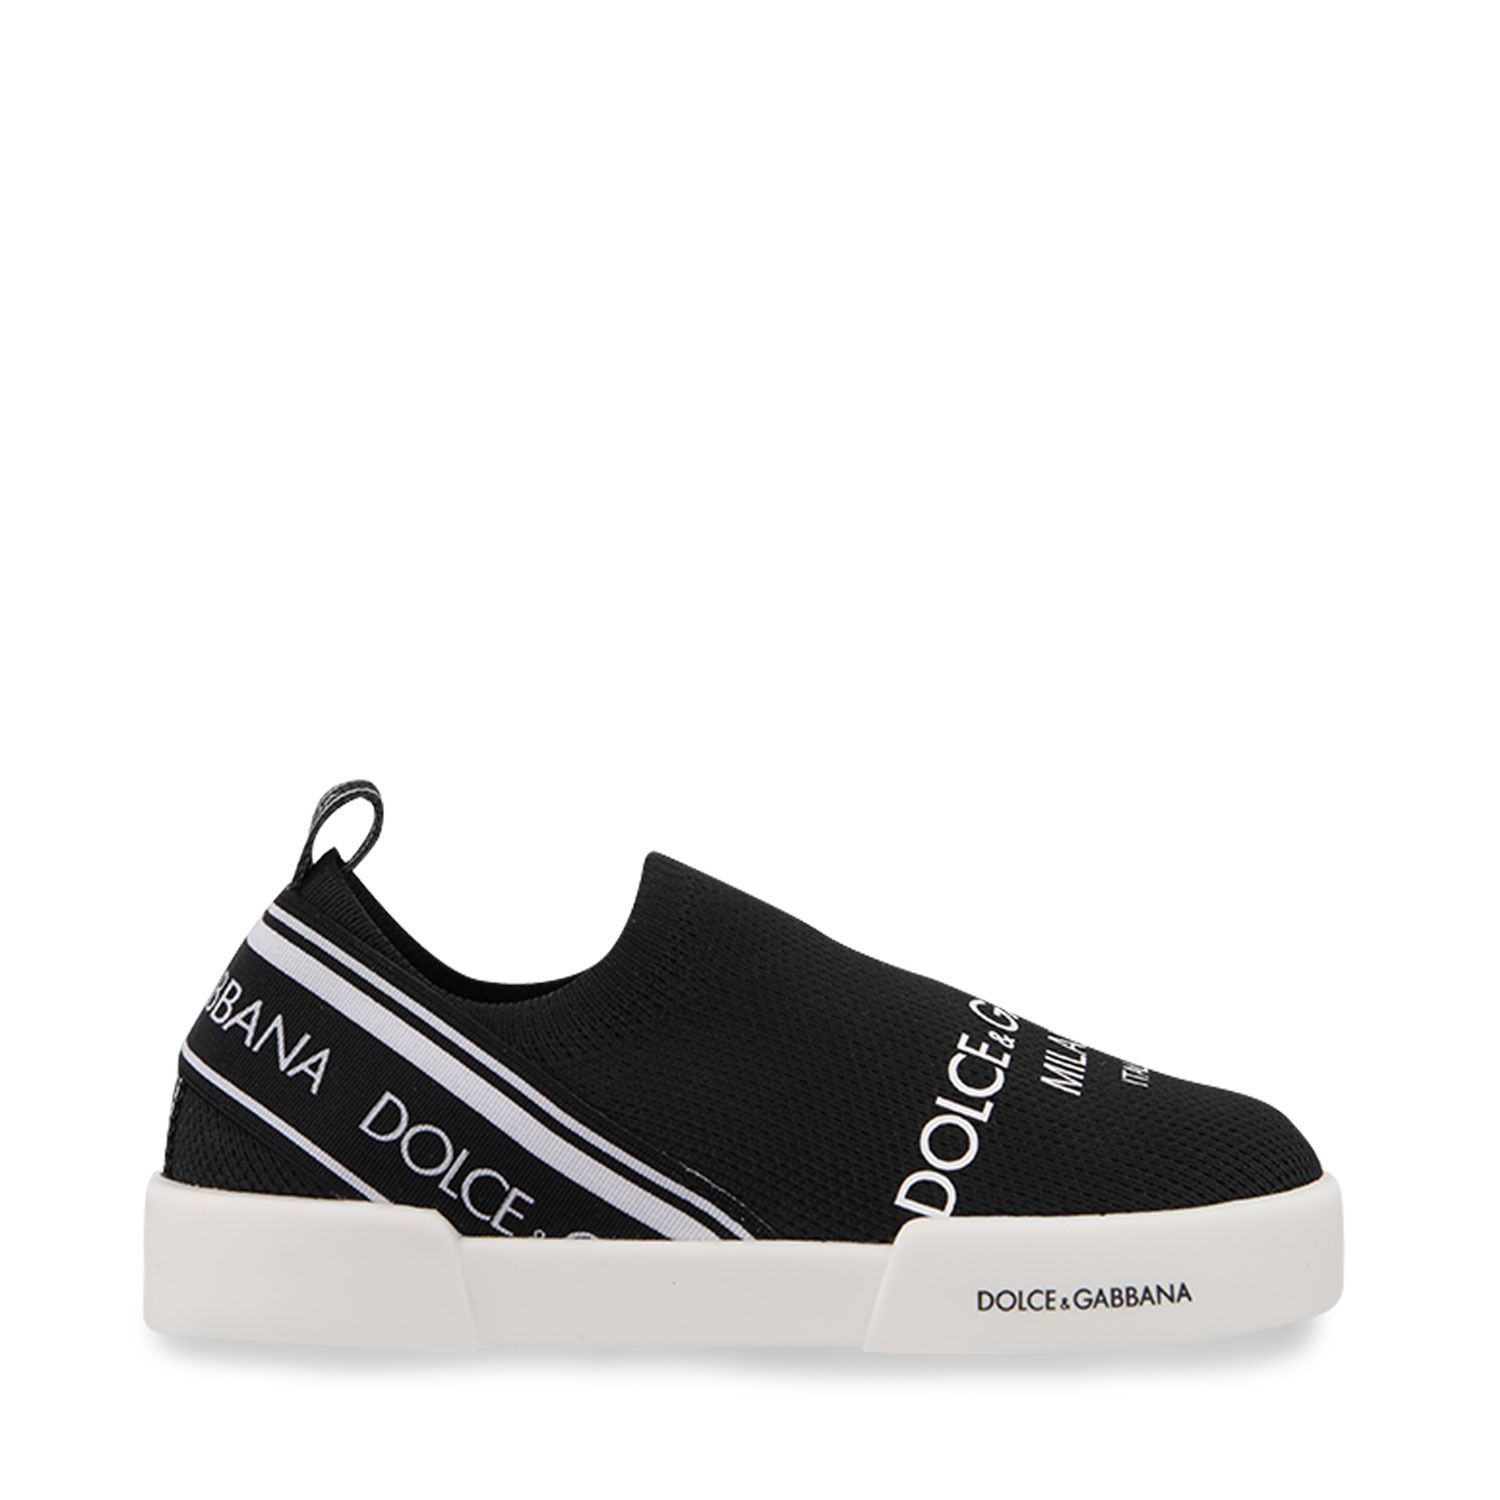 Picture of Dolce & Gabbana DN0151 AA660 kids sneakers black